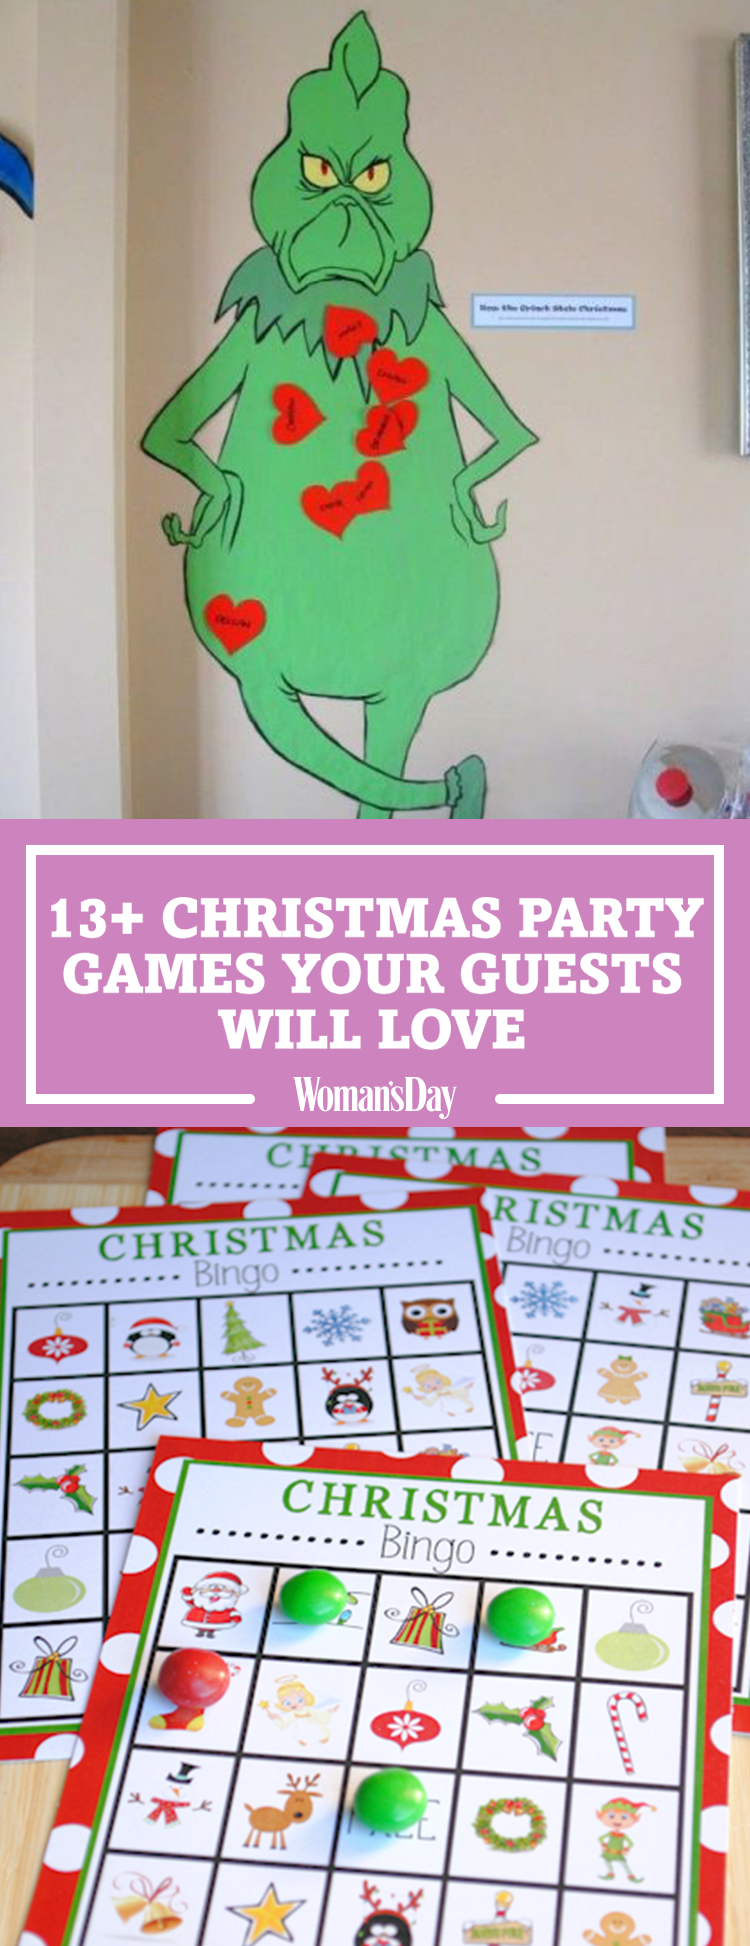 christmas party games 17 for diy 12808